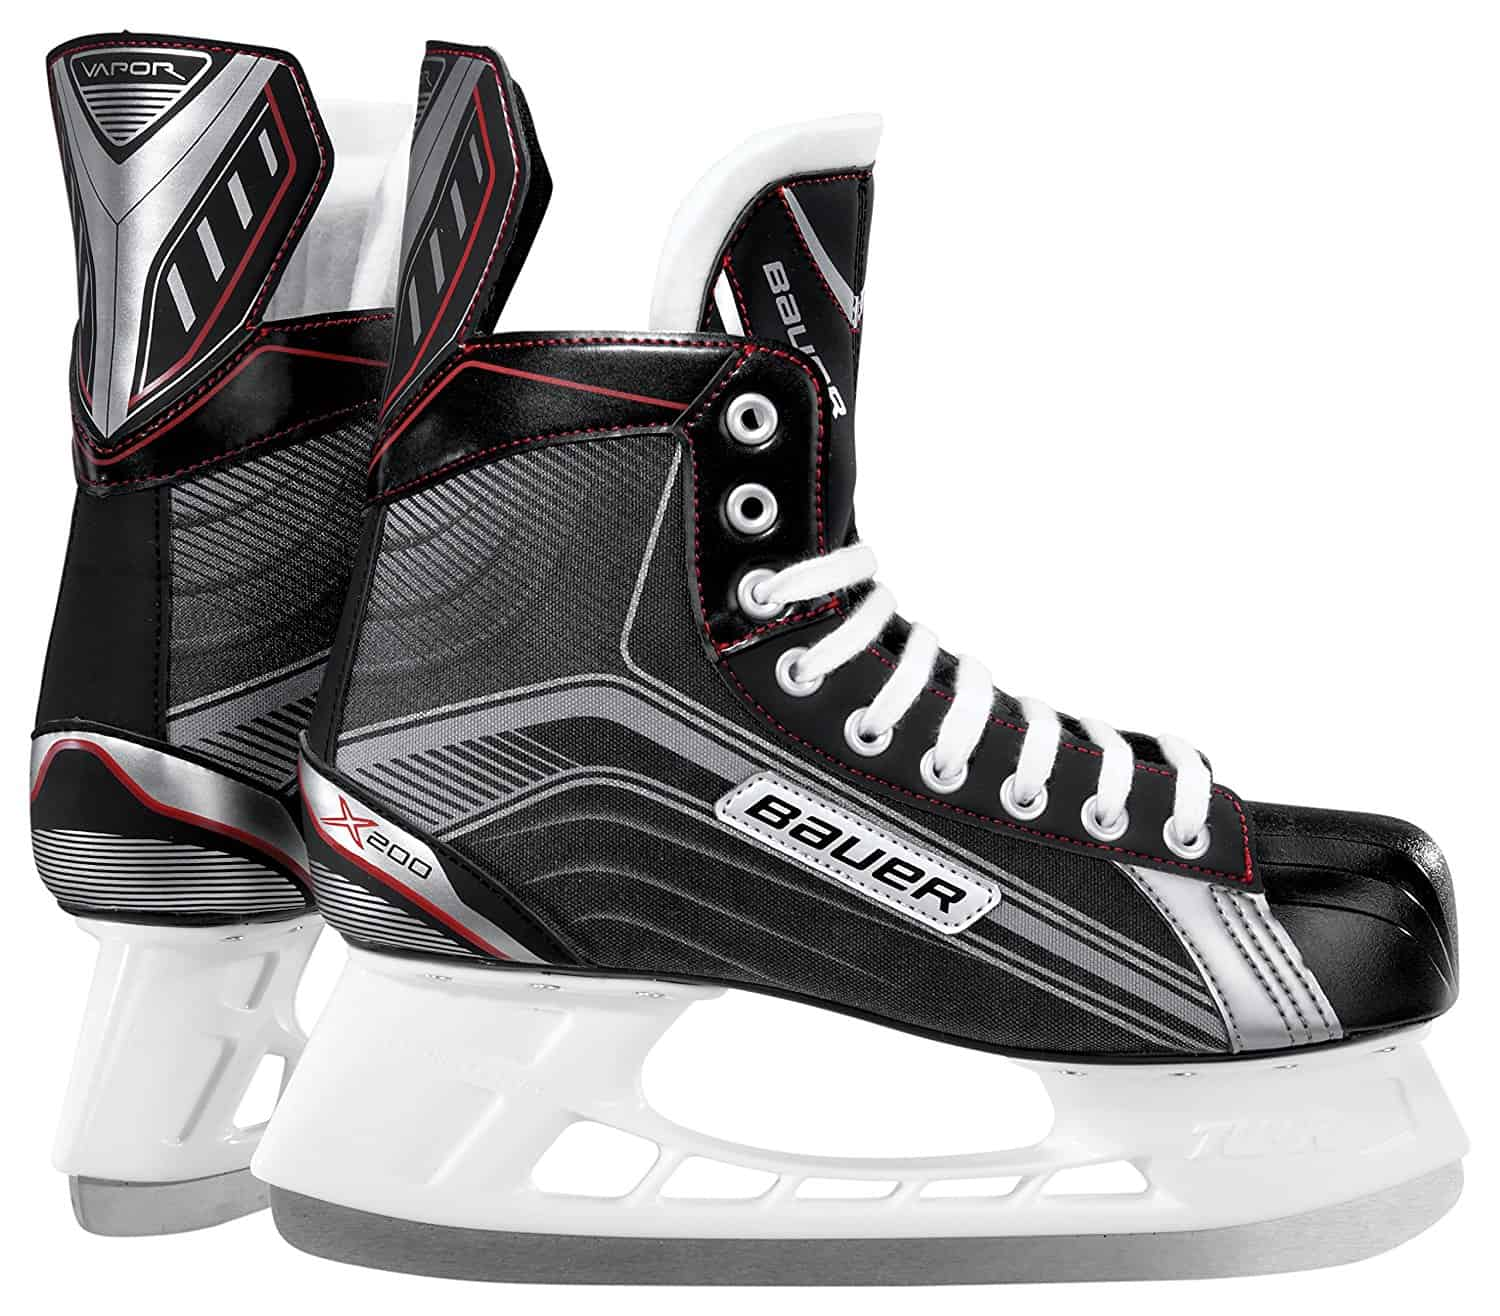 Bauer Youth Vapor X200 Skate